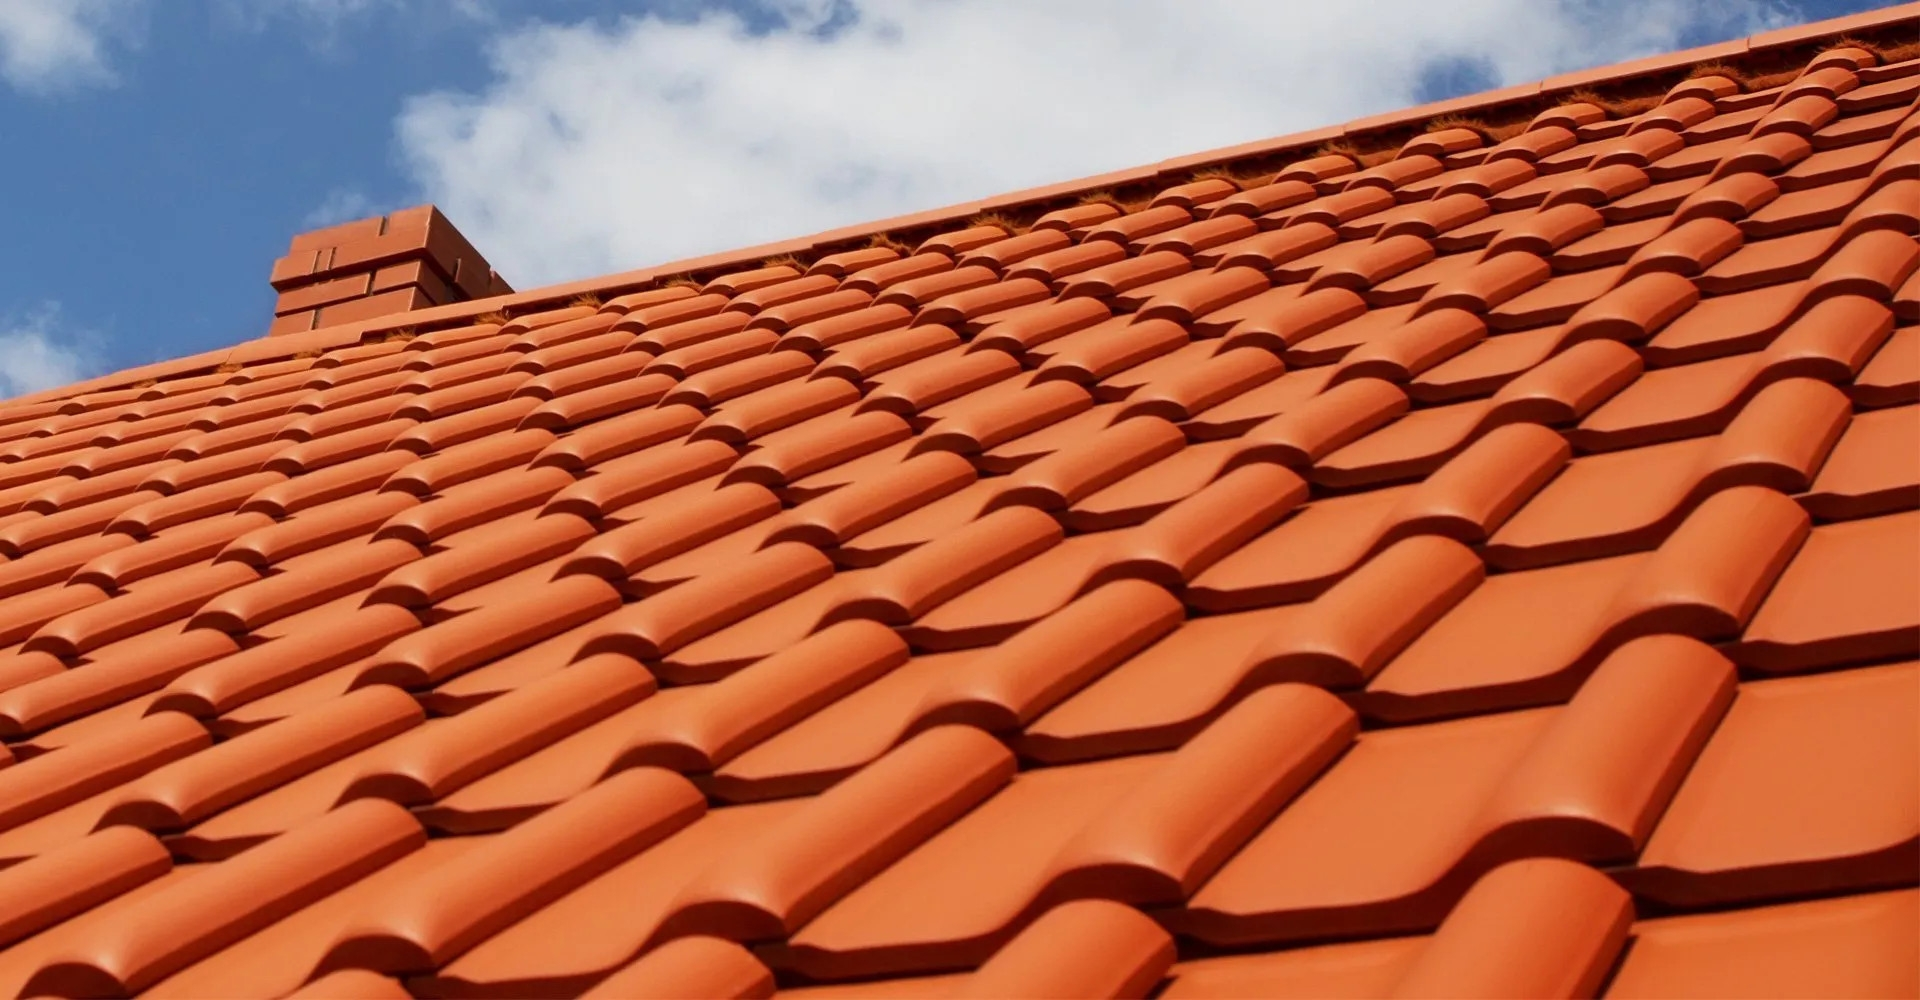 Ants Roofing And Building Maintenance (@antsroofing) Cover Image